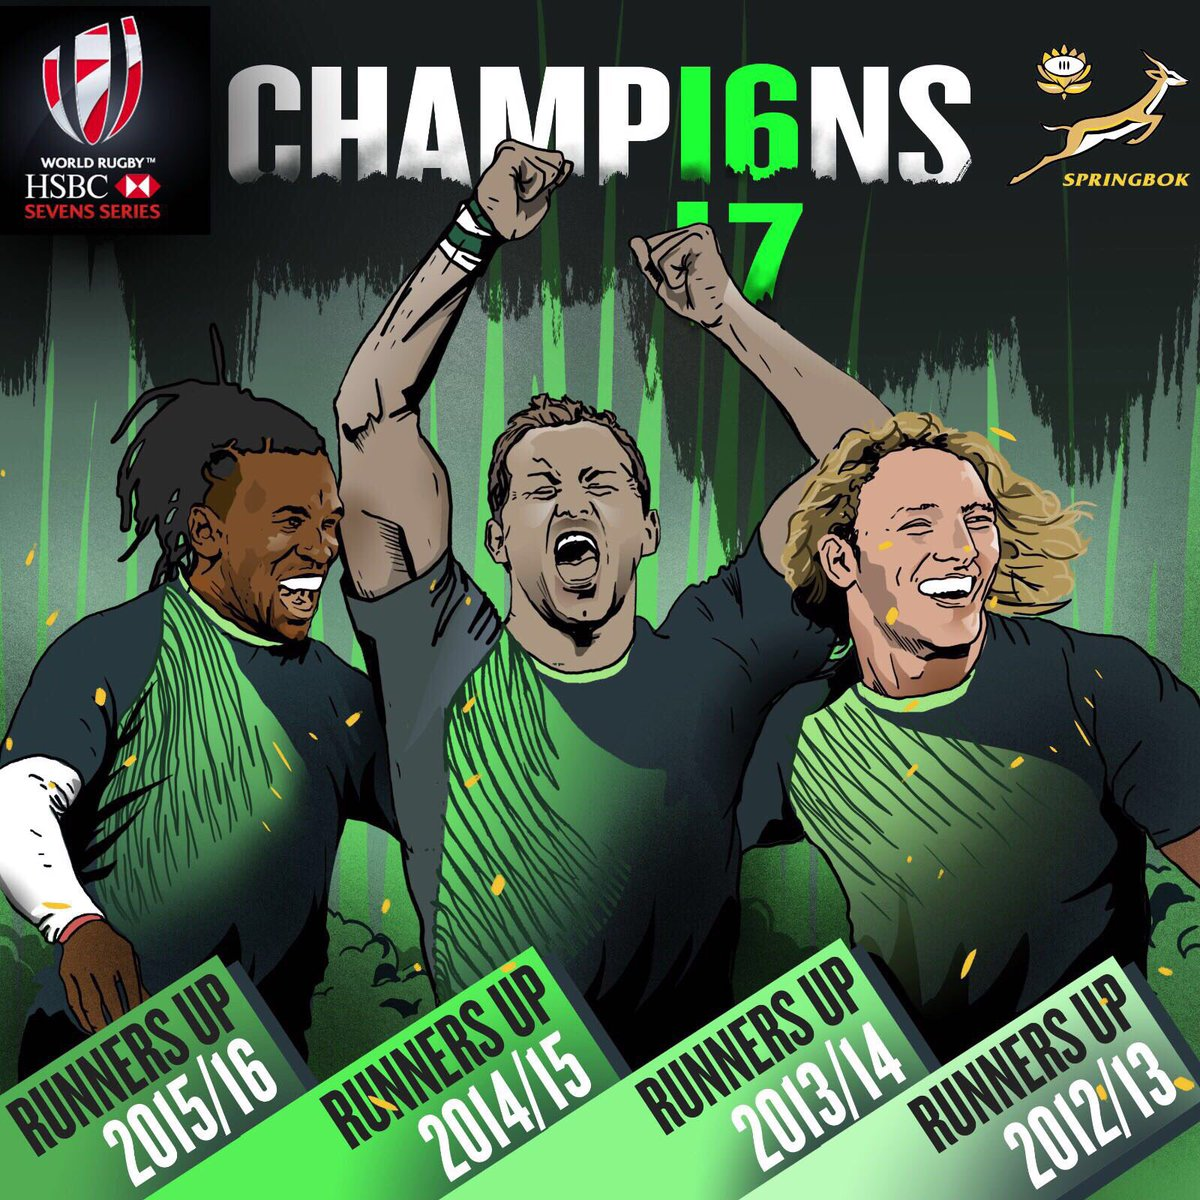 Congratulations to your 2016/17 HSBC World Rugby Sevens Series champions @Blitzboks #HSBC7s